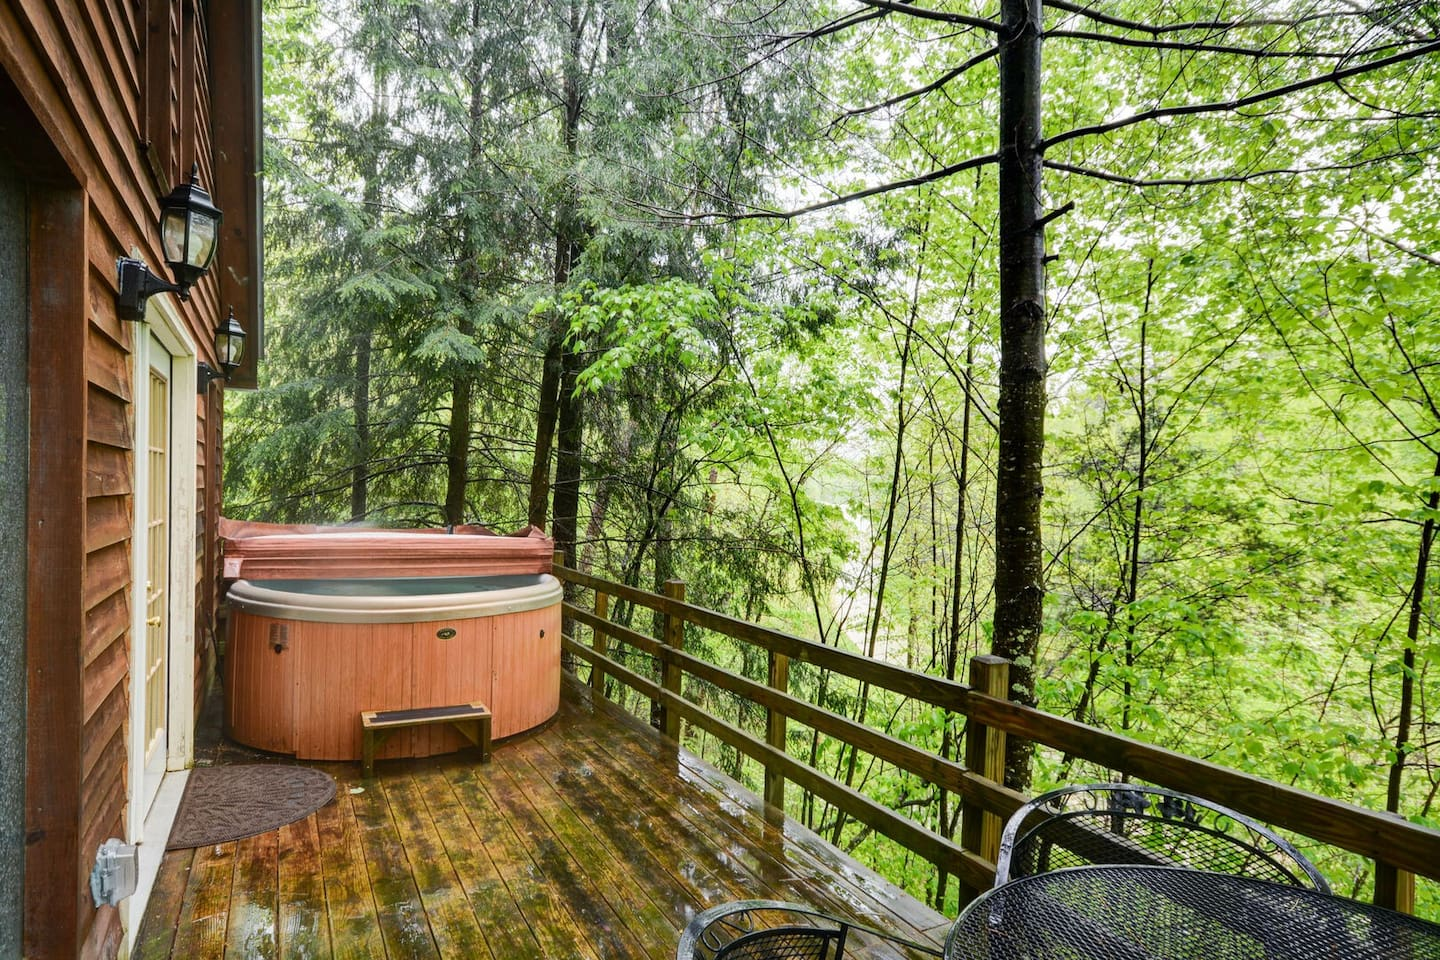 The back porch of Hidden Chalet is tucked away to provide you with privacy and beautiful nature views